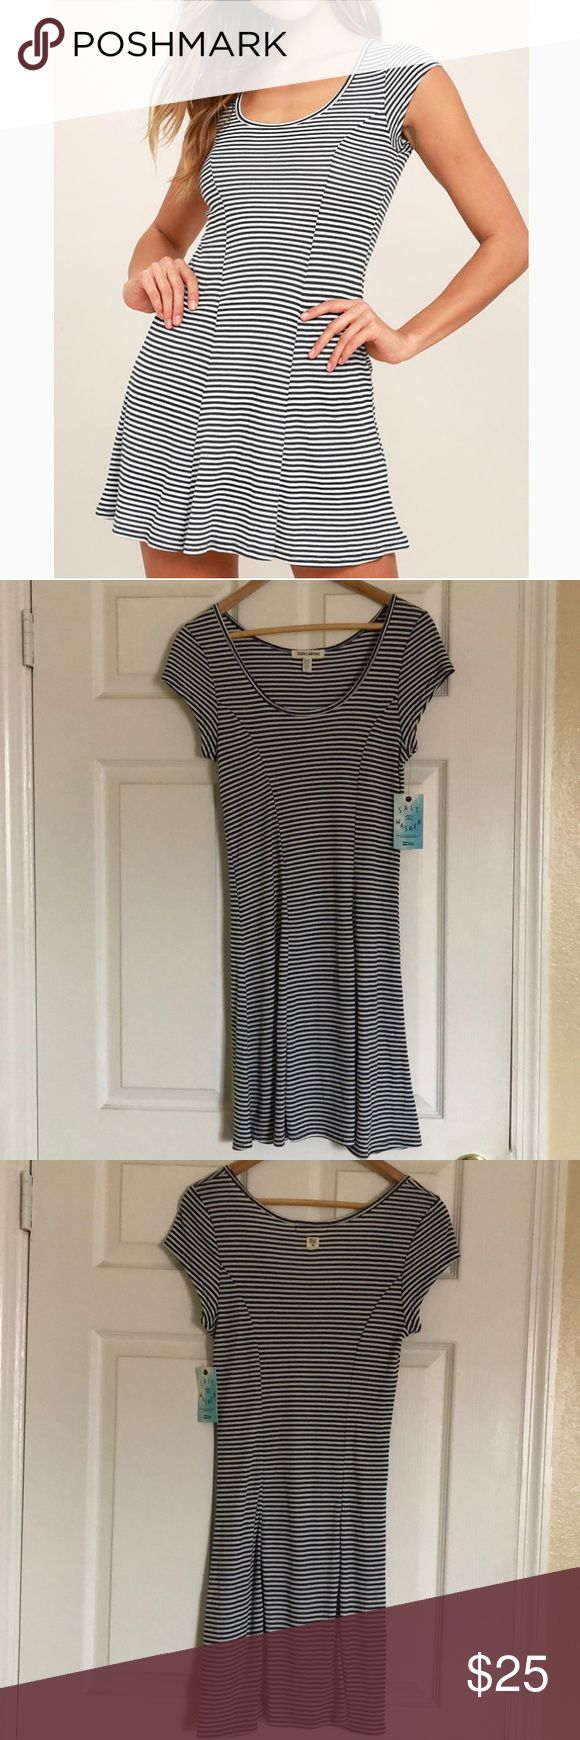 """NEW Billabong """"same love"""" short sleeve dress New billabong same love black and white striped skater dress. It has a scooped neckline with short sleeves. This will be your new go to dress.   50% polyester  50% rayon  Measurements (all approximately)  Length: 32.5 Width (underarm to underarm): 16  Skirt: 29.5 Sleeves: 4  Please let me know if you have any questions. I am open to reasonable offers. Billabong Dresses"""